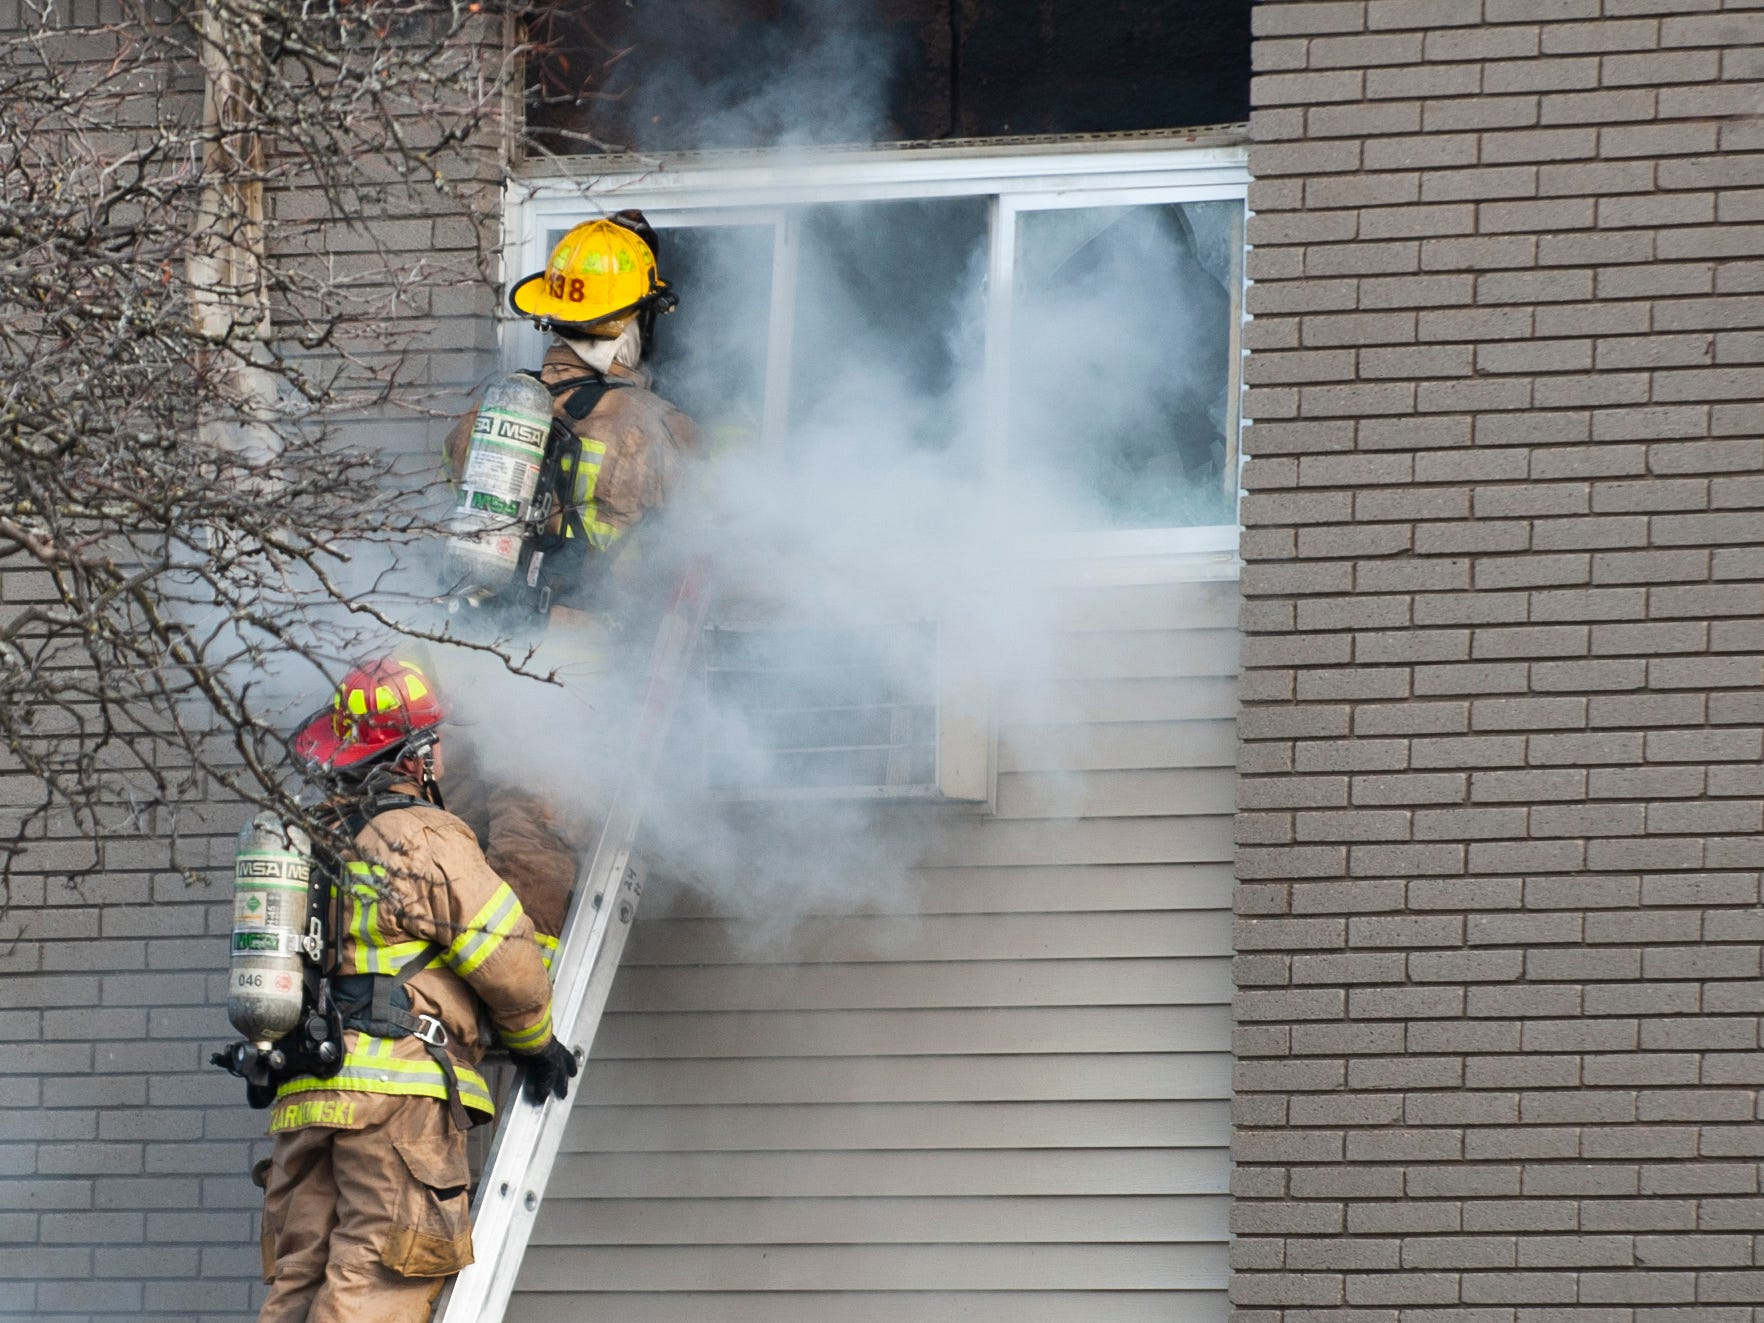 Firefighters douse a huge fire on Christmas morning at the Sterling Troy Apartments.